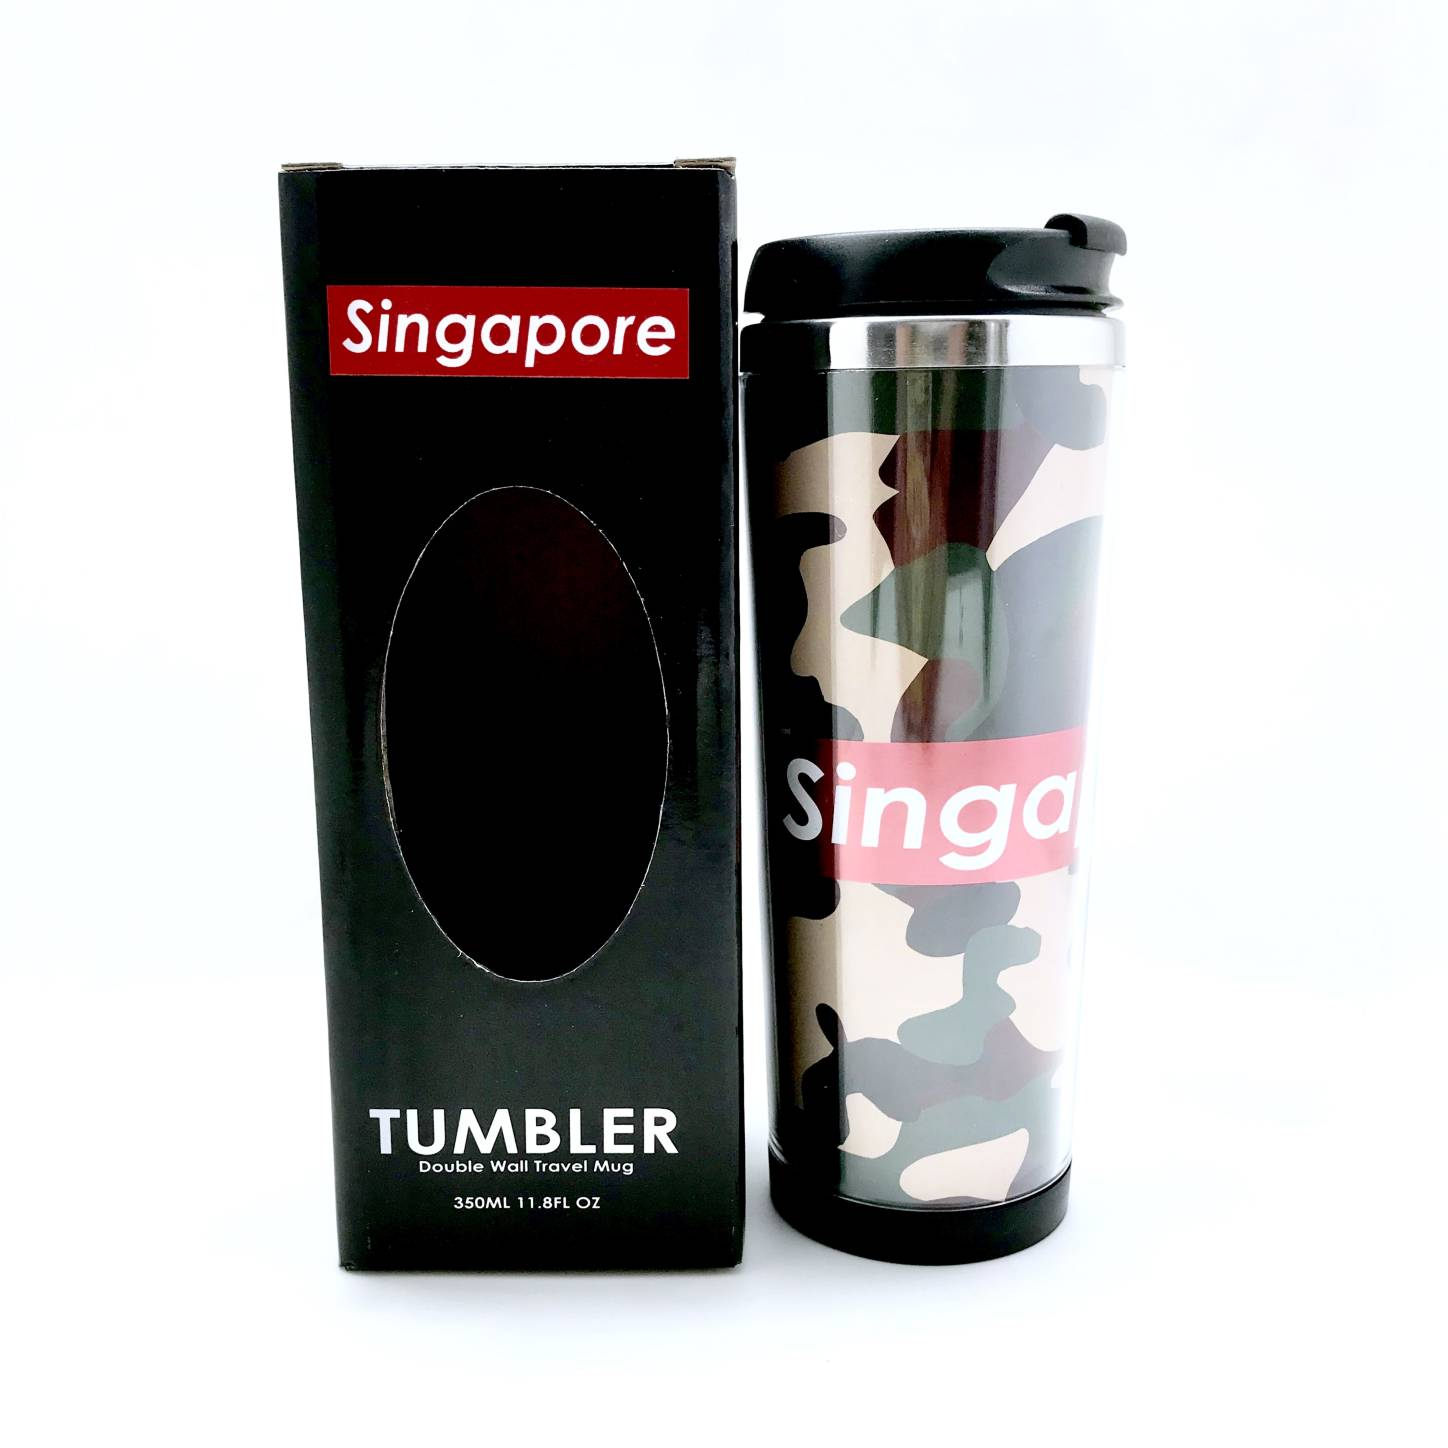 Tumler-Army Camo with Package